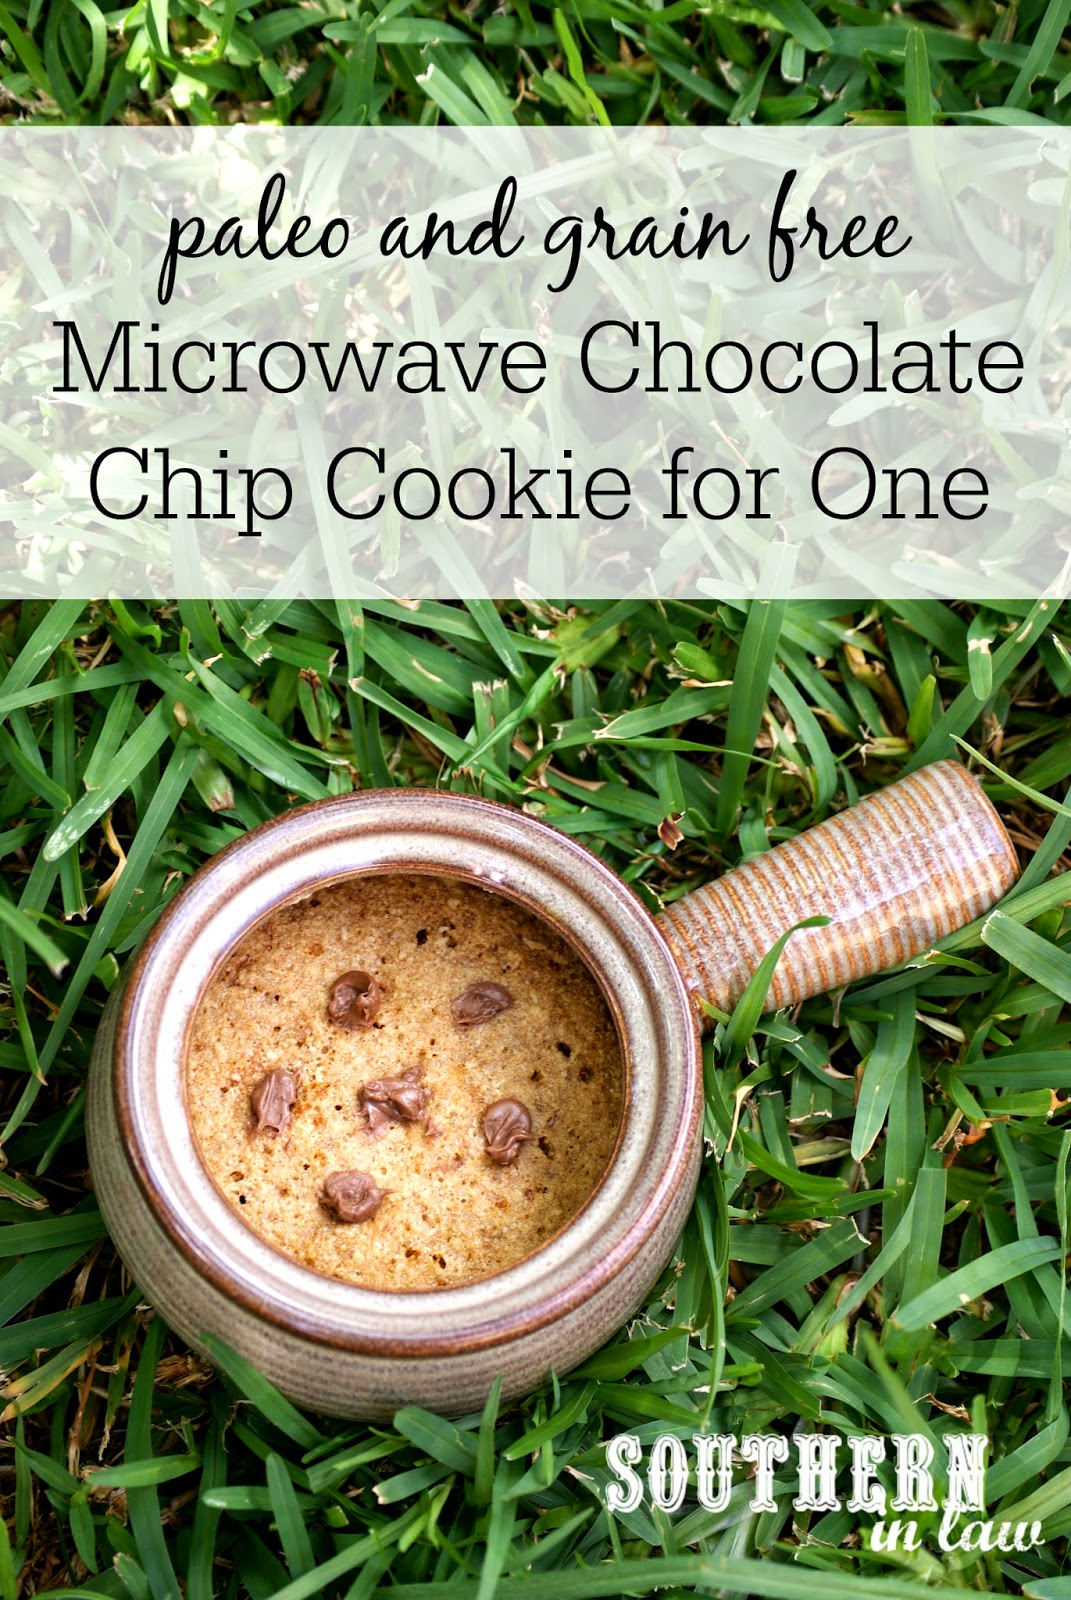 Paleo and Grain Free Microwave Chocolate Chip Cookie in a Mug Recipe - gluten free, grain free, refined sugar free, single serving